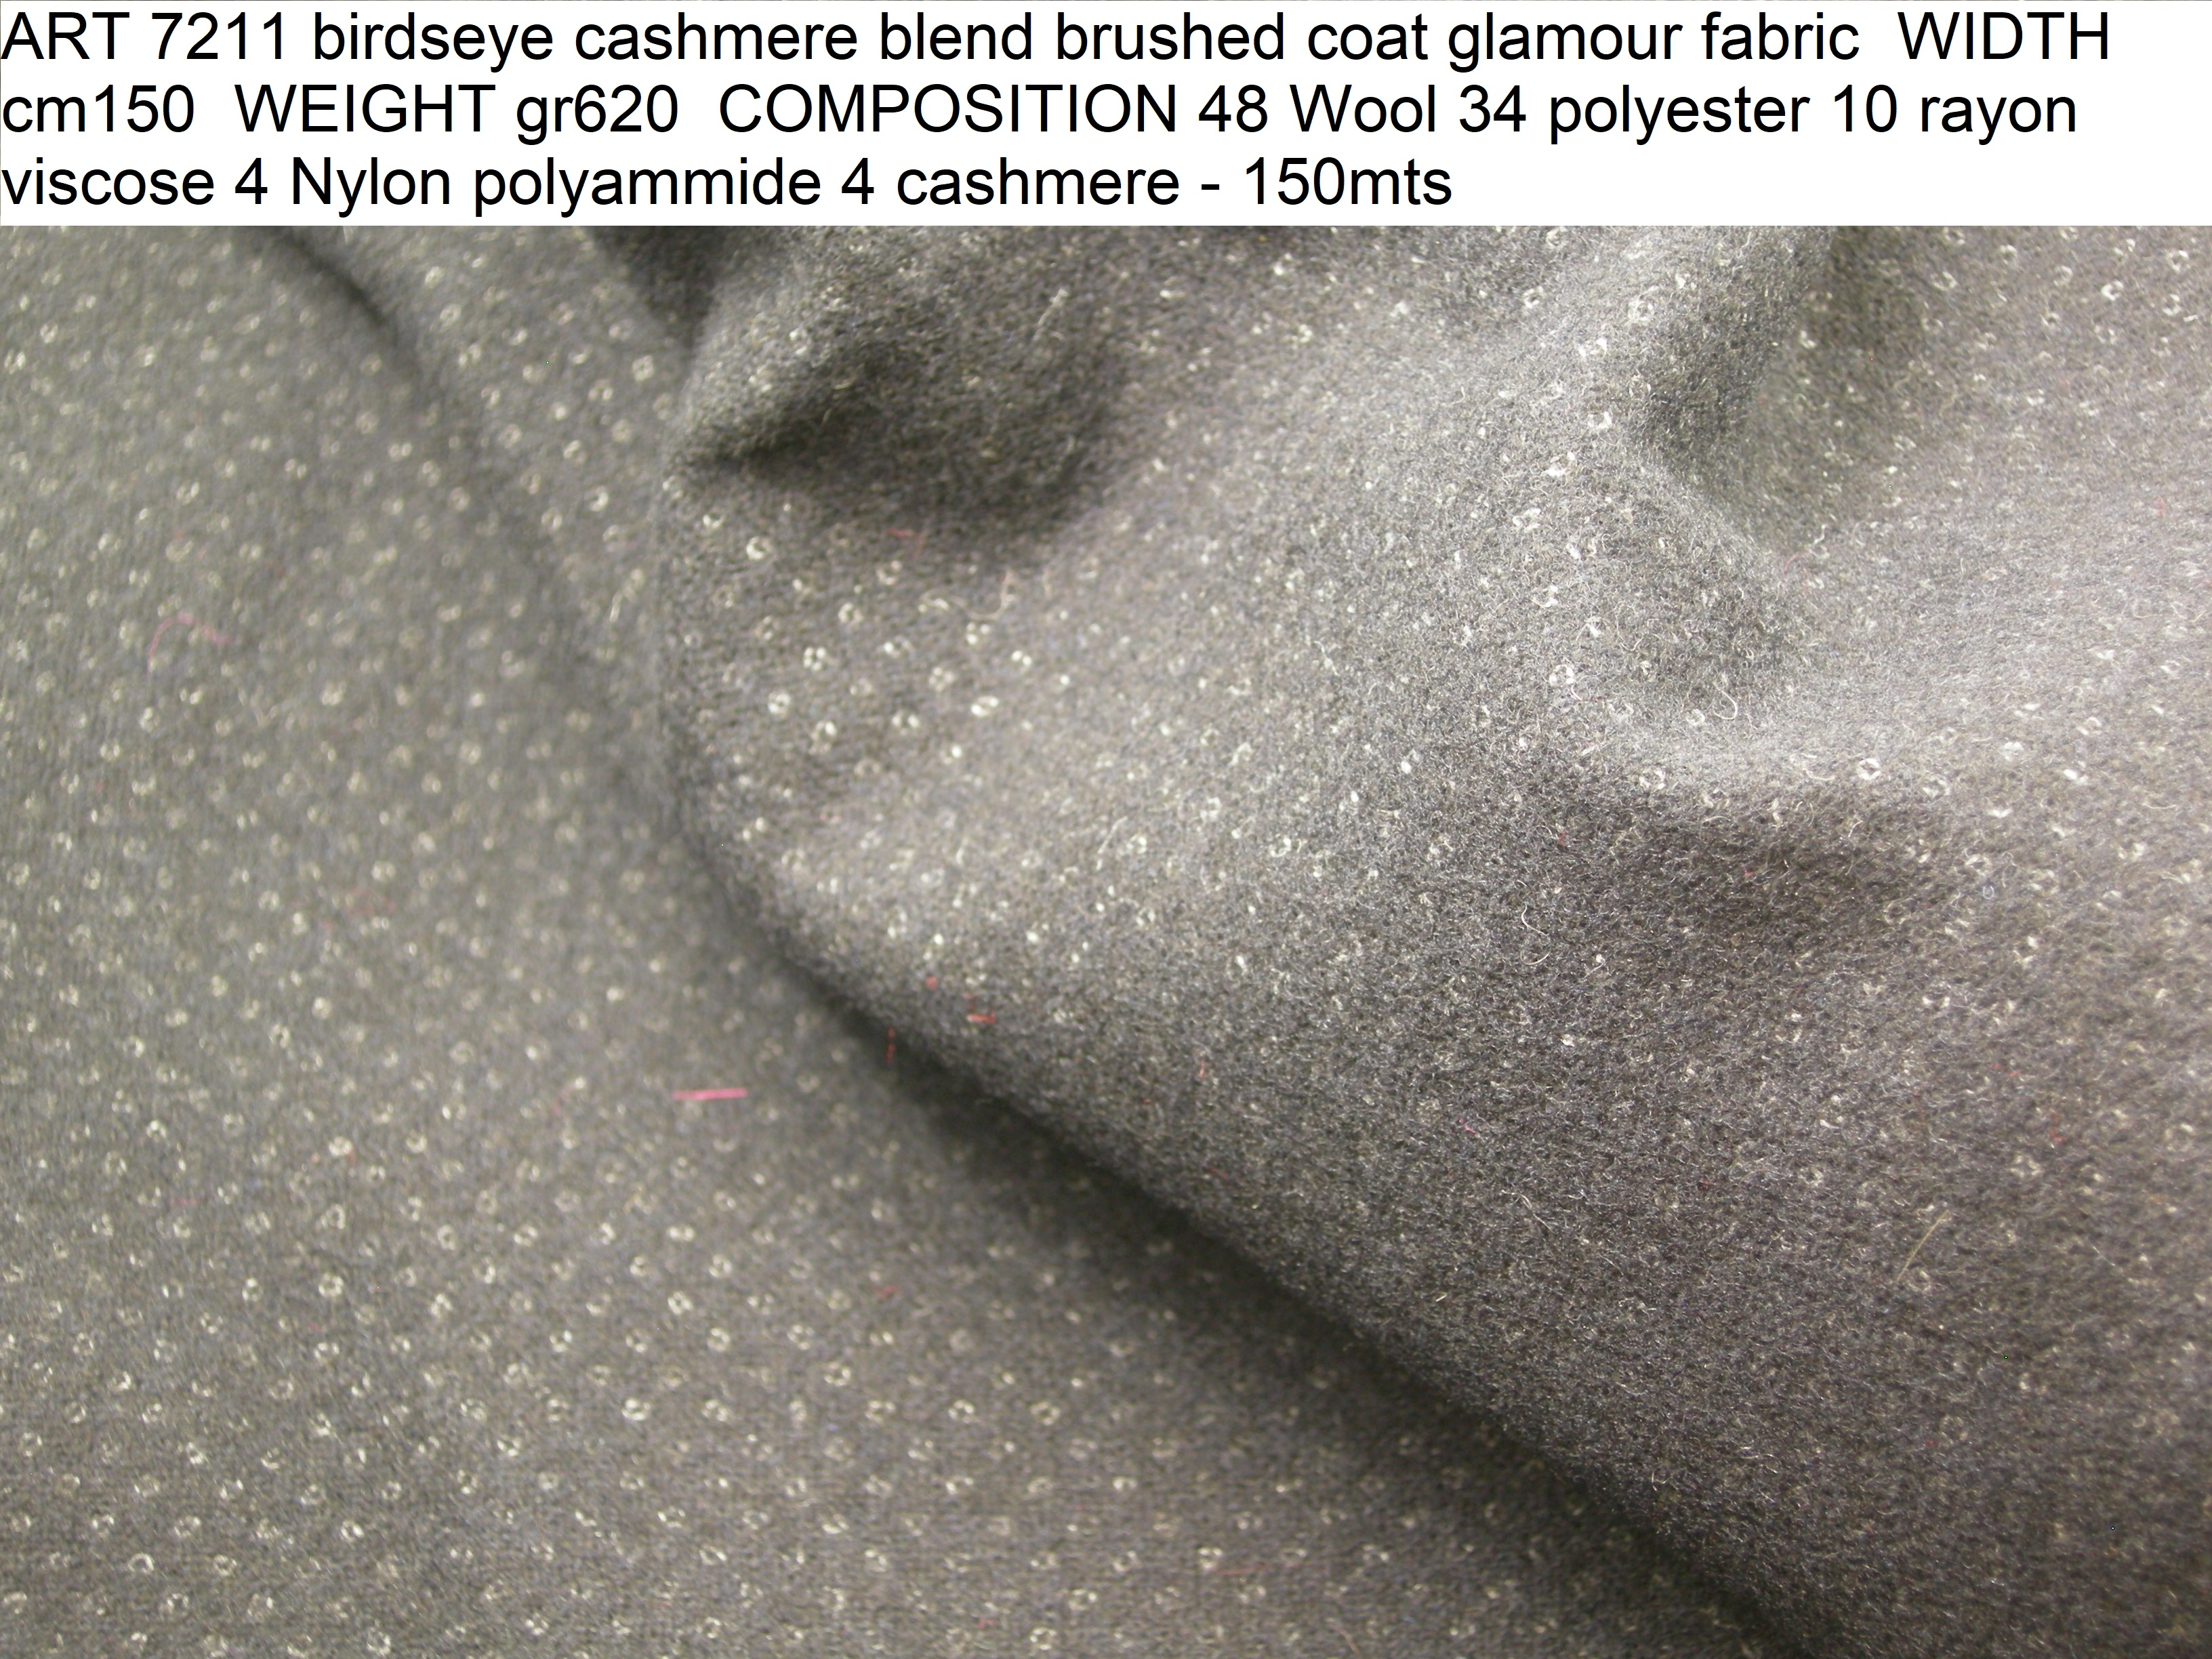 ART 7211 birdseye cashmere blend brushed coat glamour fabric WIDTH cm150 WEIGHT gr620 COMPOSITION 48 Wool 34 polyester 10 rayon viscose 4 Nylon polyammide 4 cashmere - 150mts